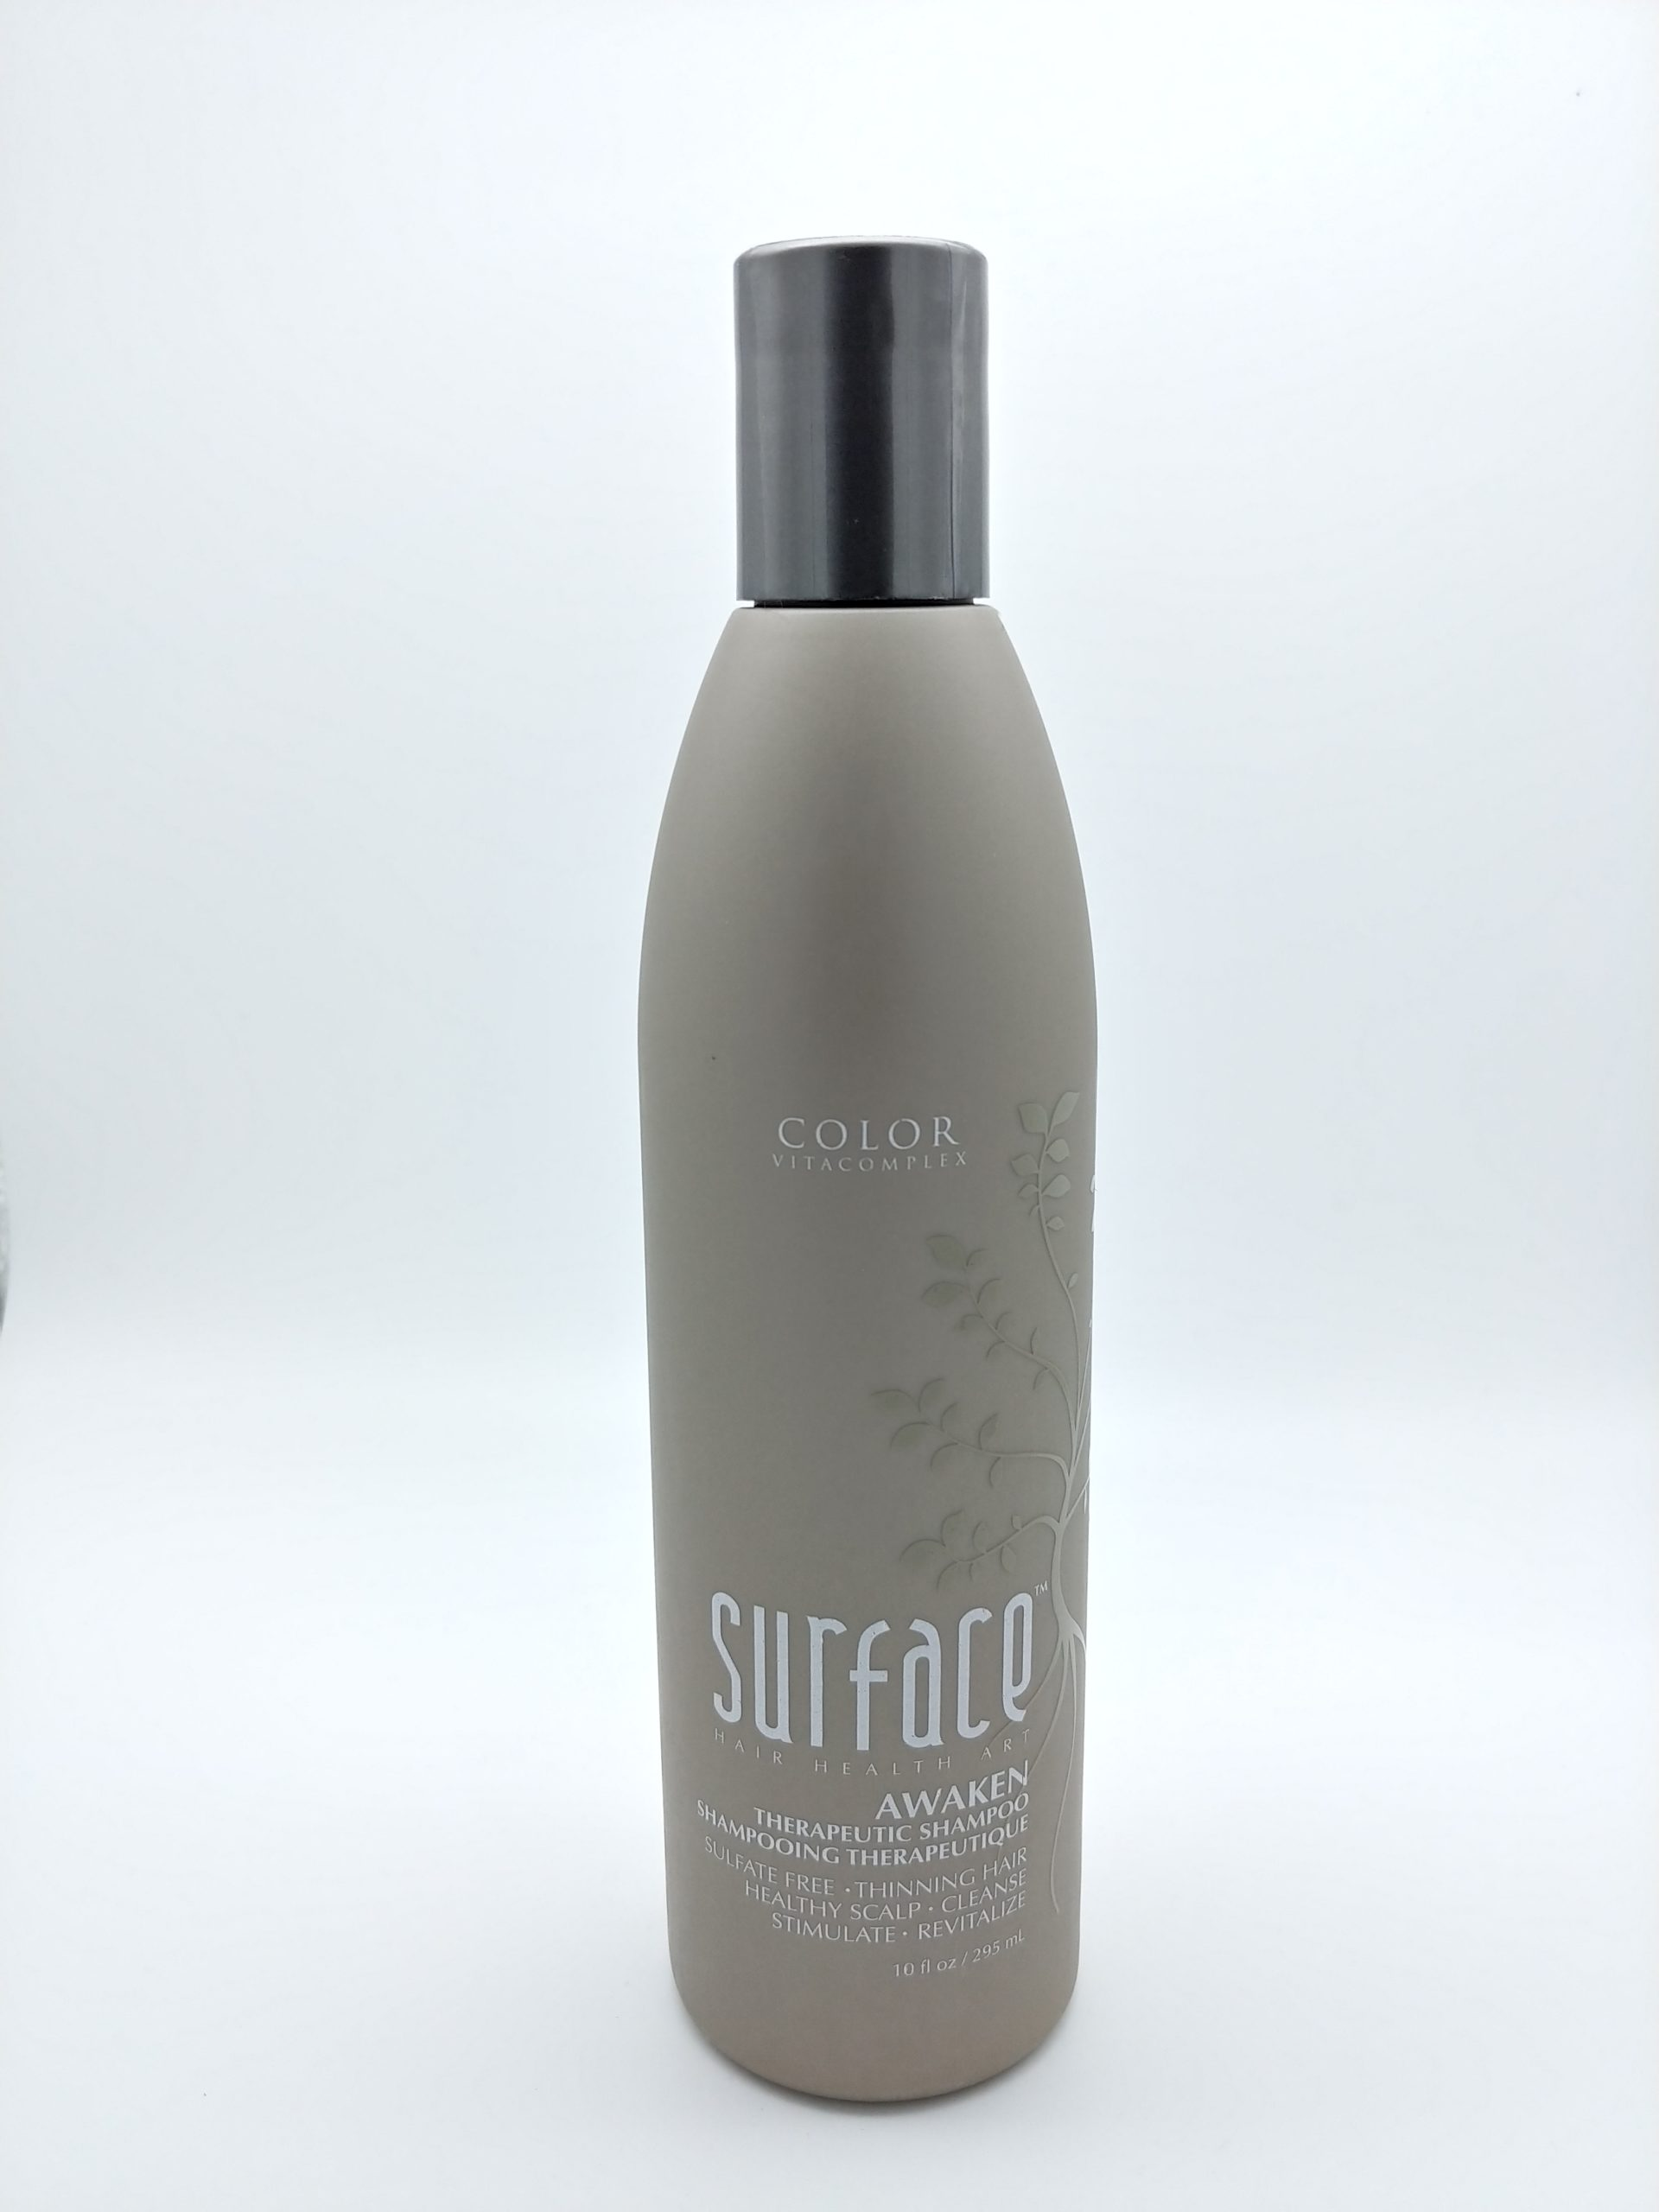 Surface Awaken Therapeutic Shampoo